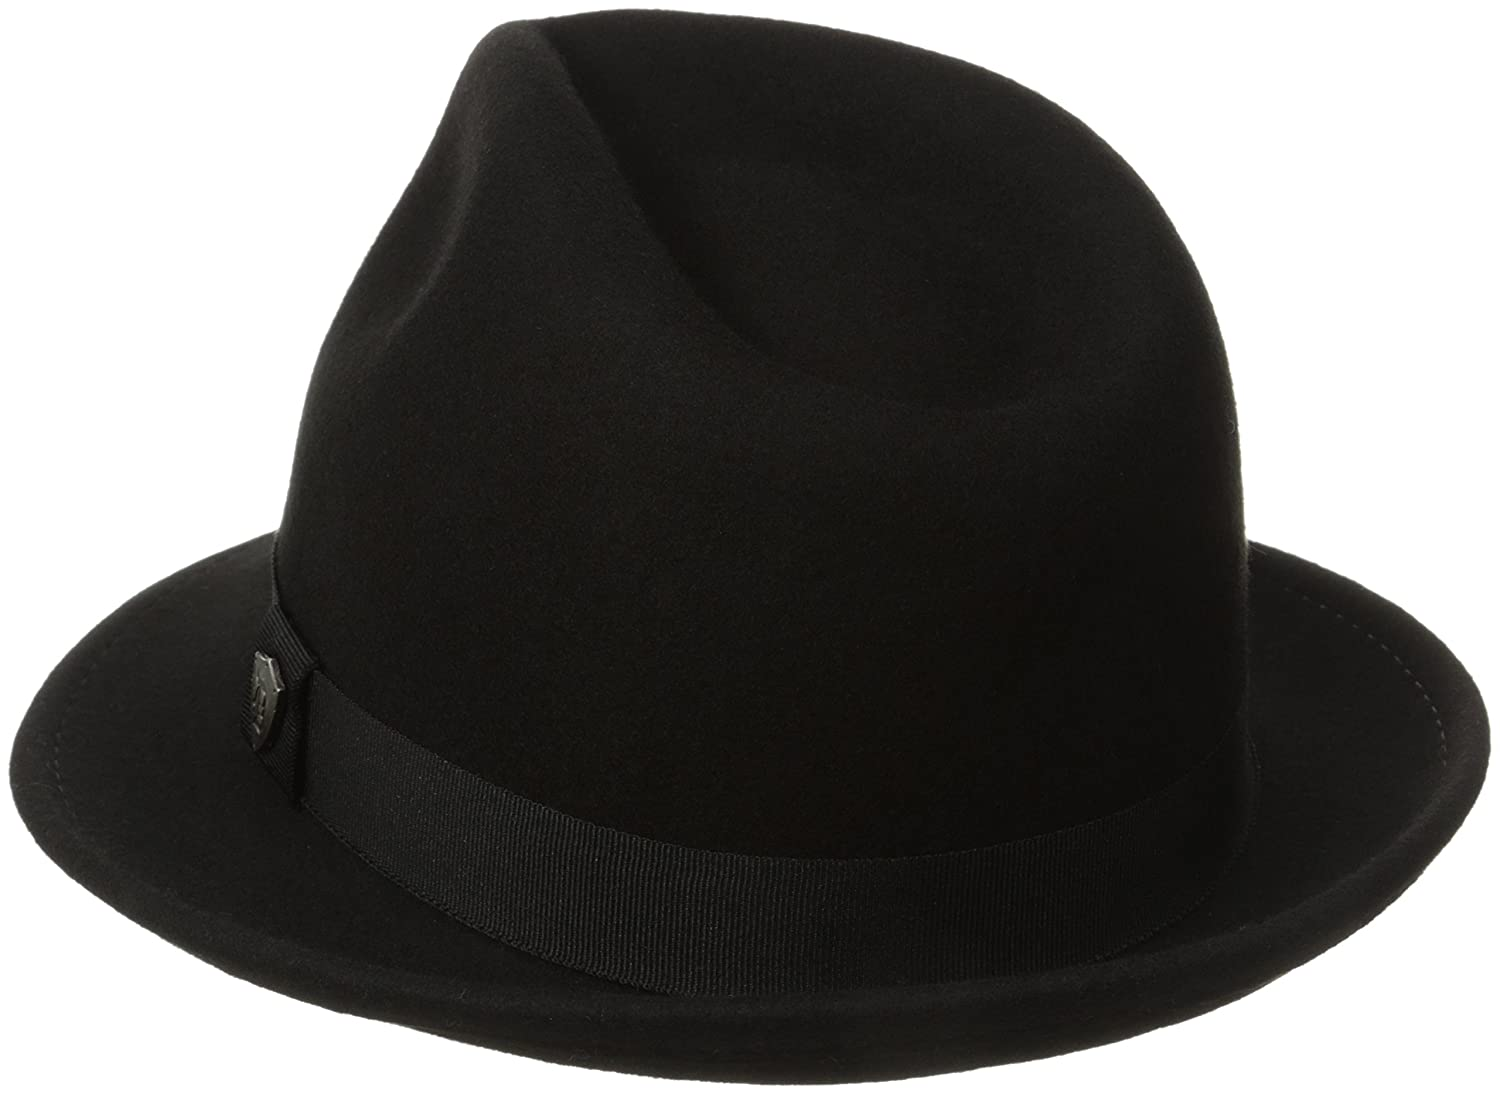 1920s Men's Costumes: Gatsby, Gangster, Peaky Blinders, Mobster, Mafia Dorfman Wool Felt Hat $44.95 AT vintagedancer.com